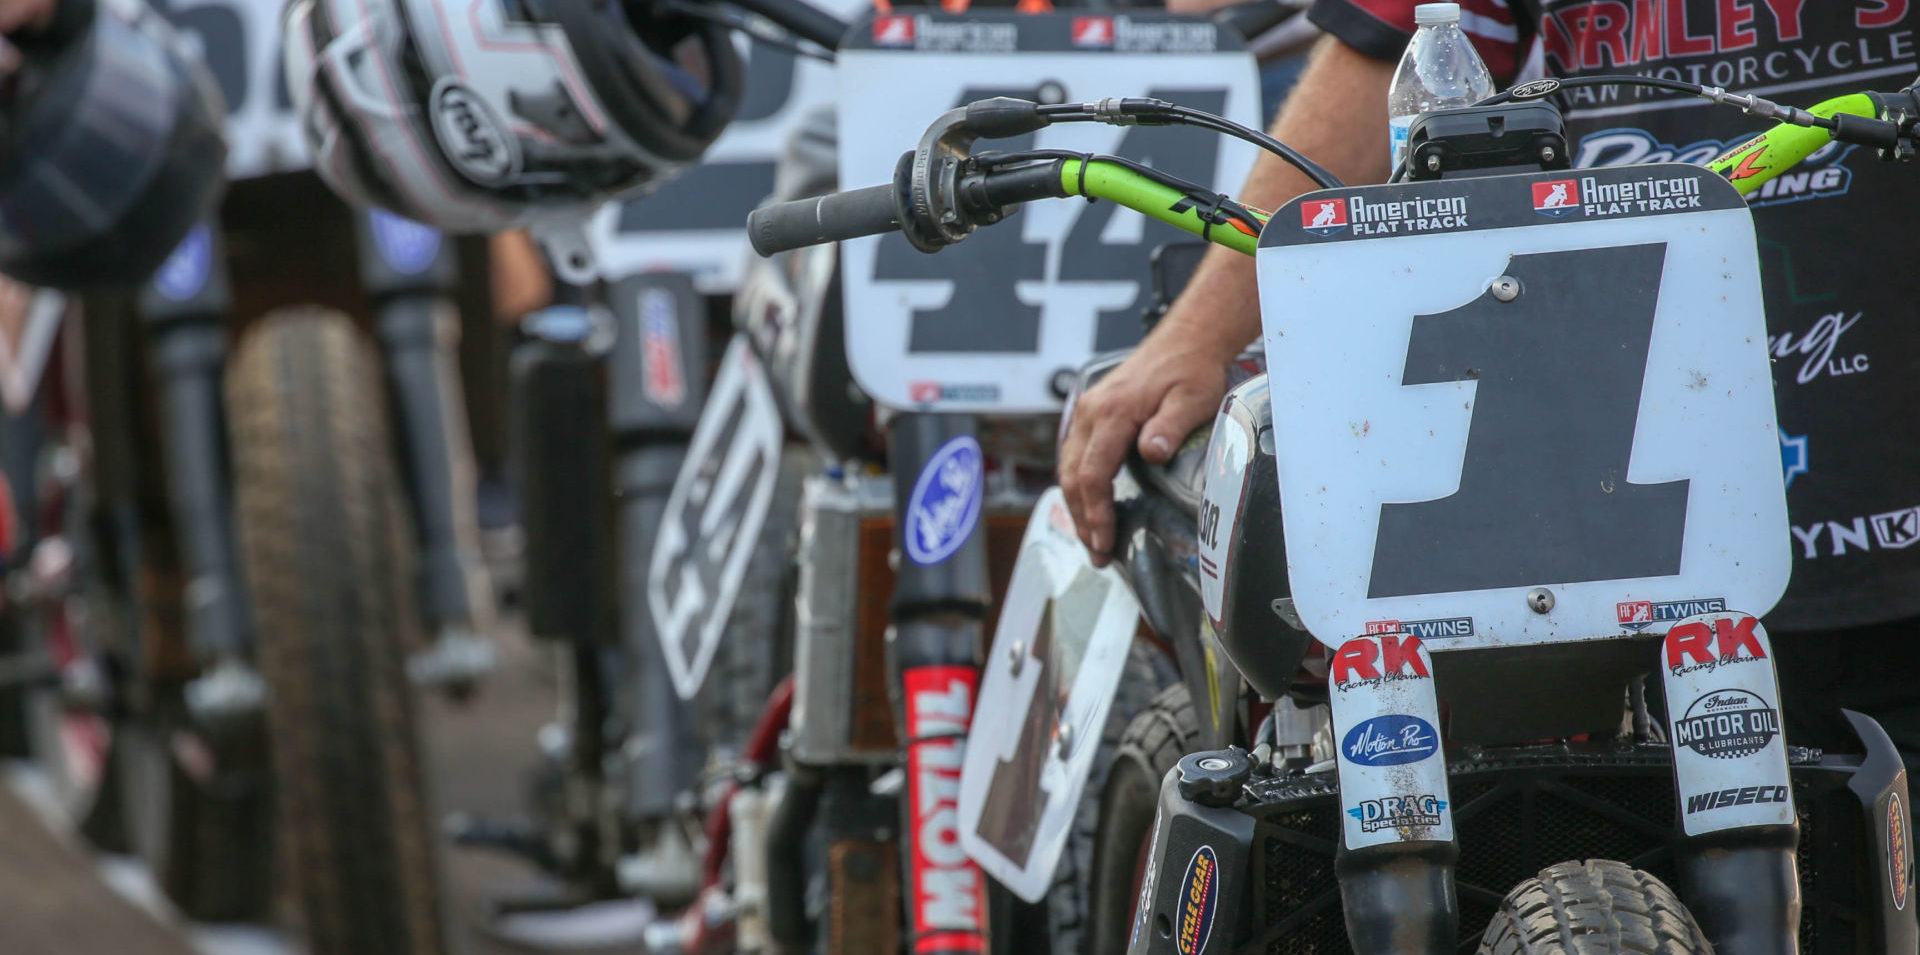 American Flat Track's 2020 contingency program has topped the $3 million mark. Photo by Scott Hunter, courtesy of AFT.